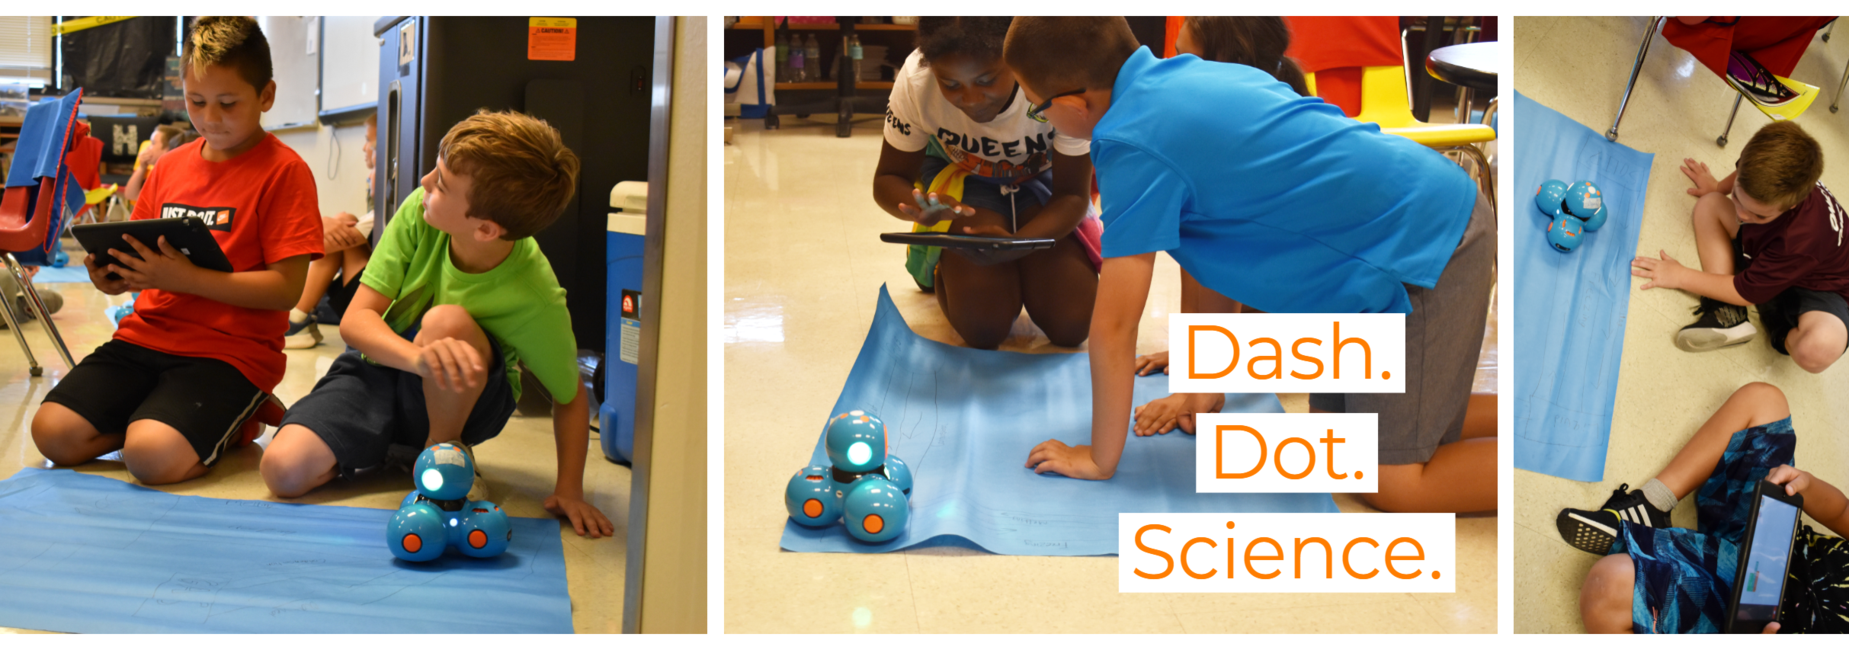 Elementary boys and girls navigate Dash and Dot